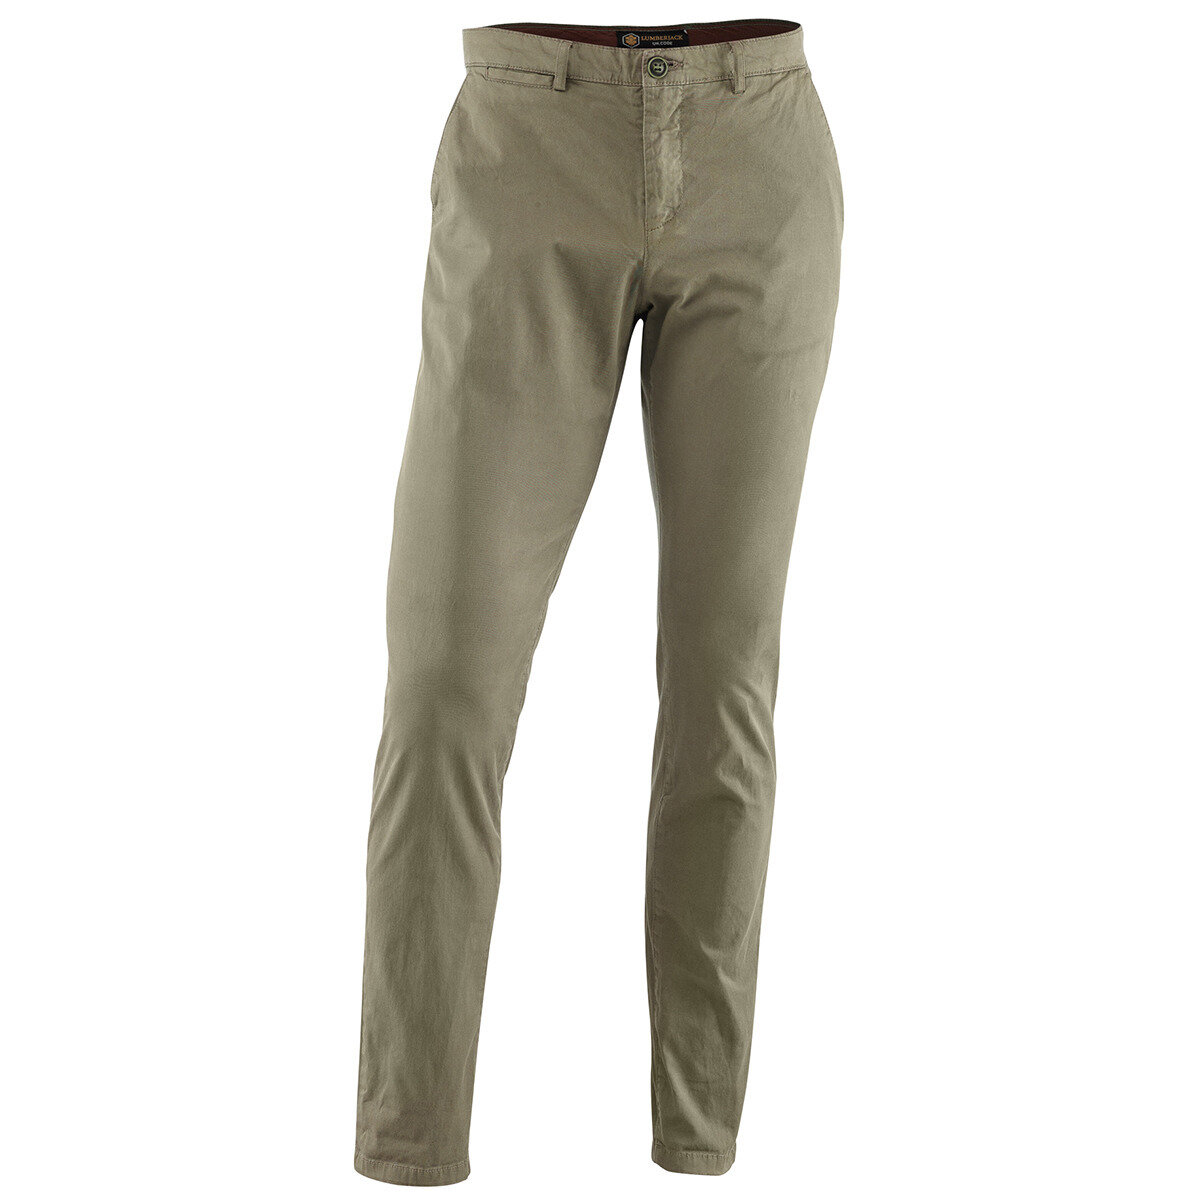 CHINOS BEIGE Man Joggers